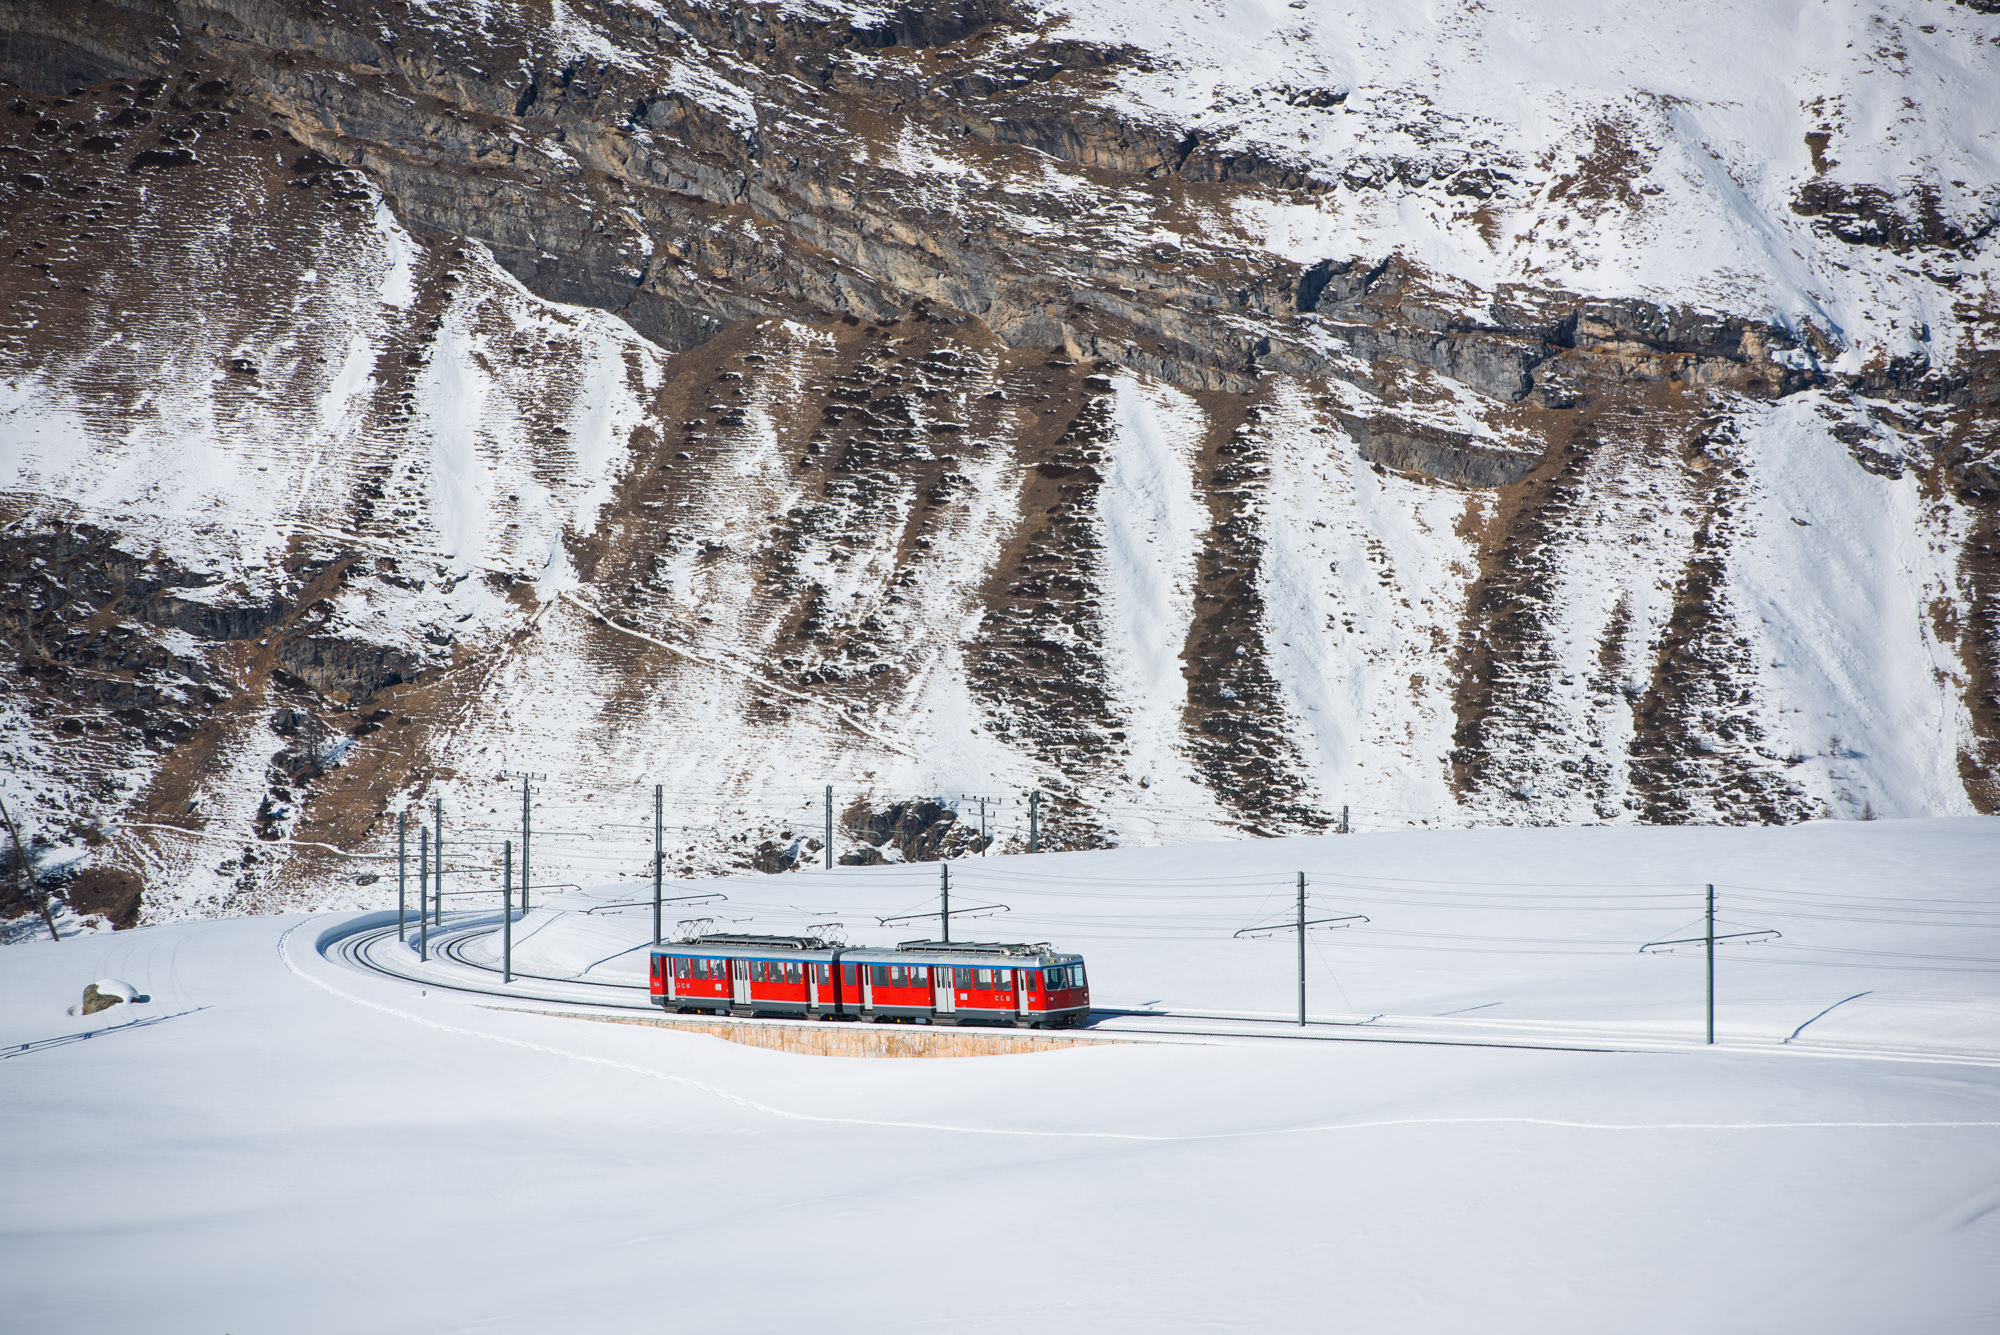 A red train in a snowy mountain scene